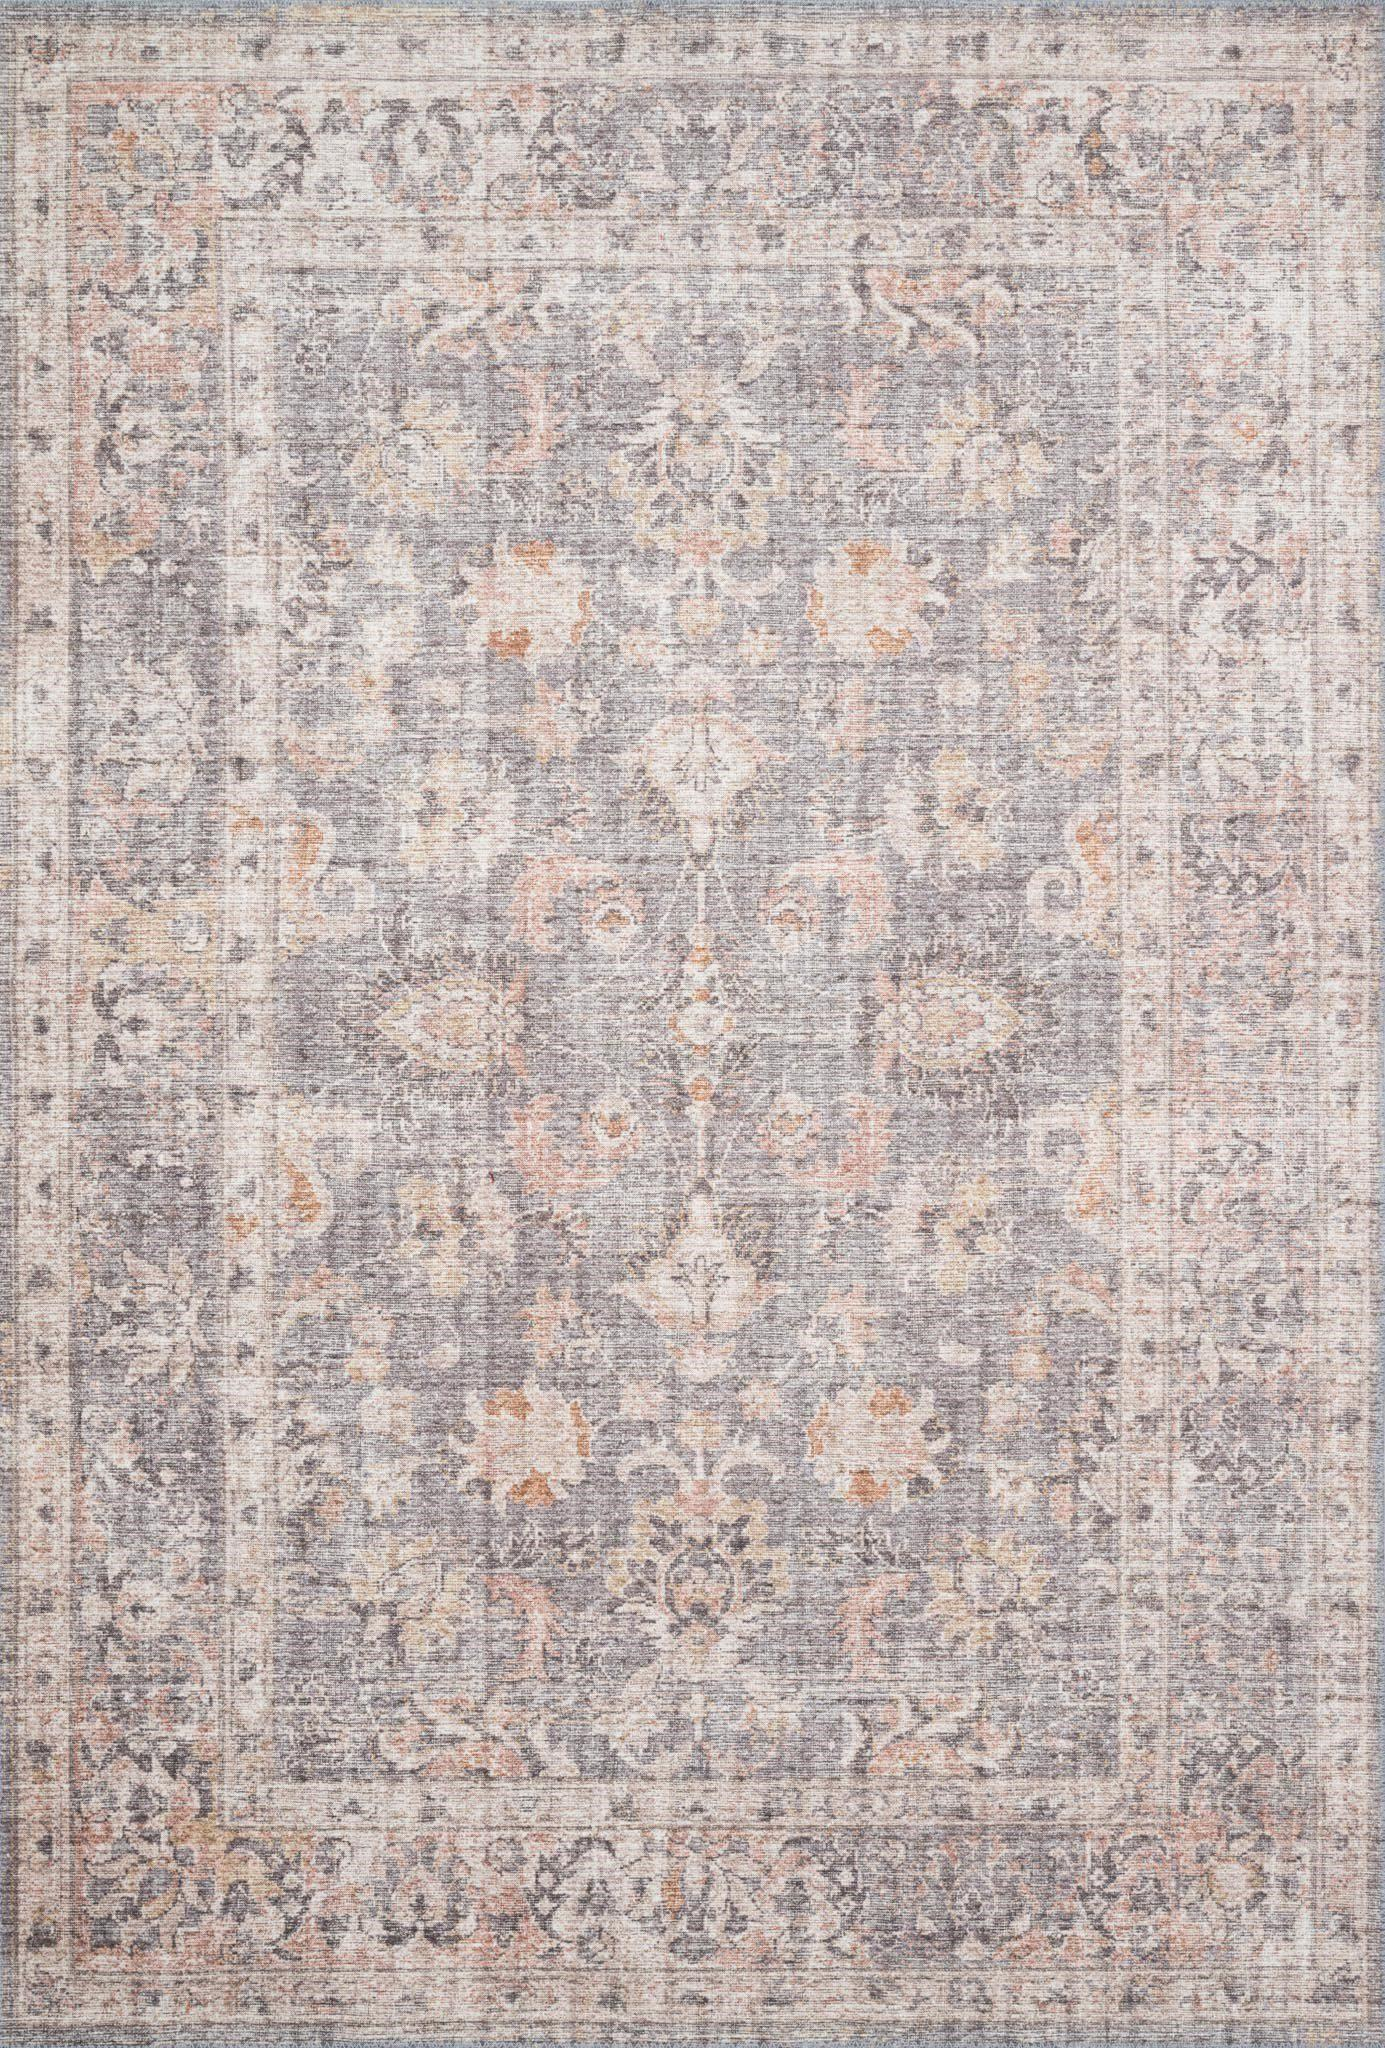 "Skye SKY-01 Grey / Apricot Area Rug-Area Rug-Loloi-1'-6"" x 1'-6"" Square-The Rug Truck"